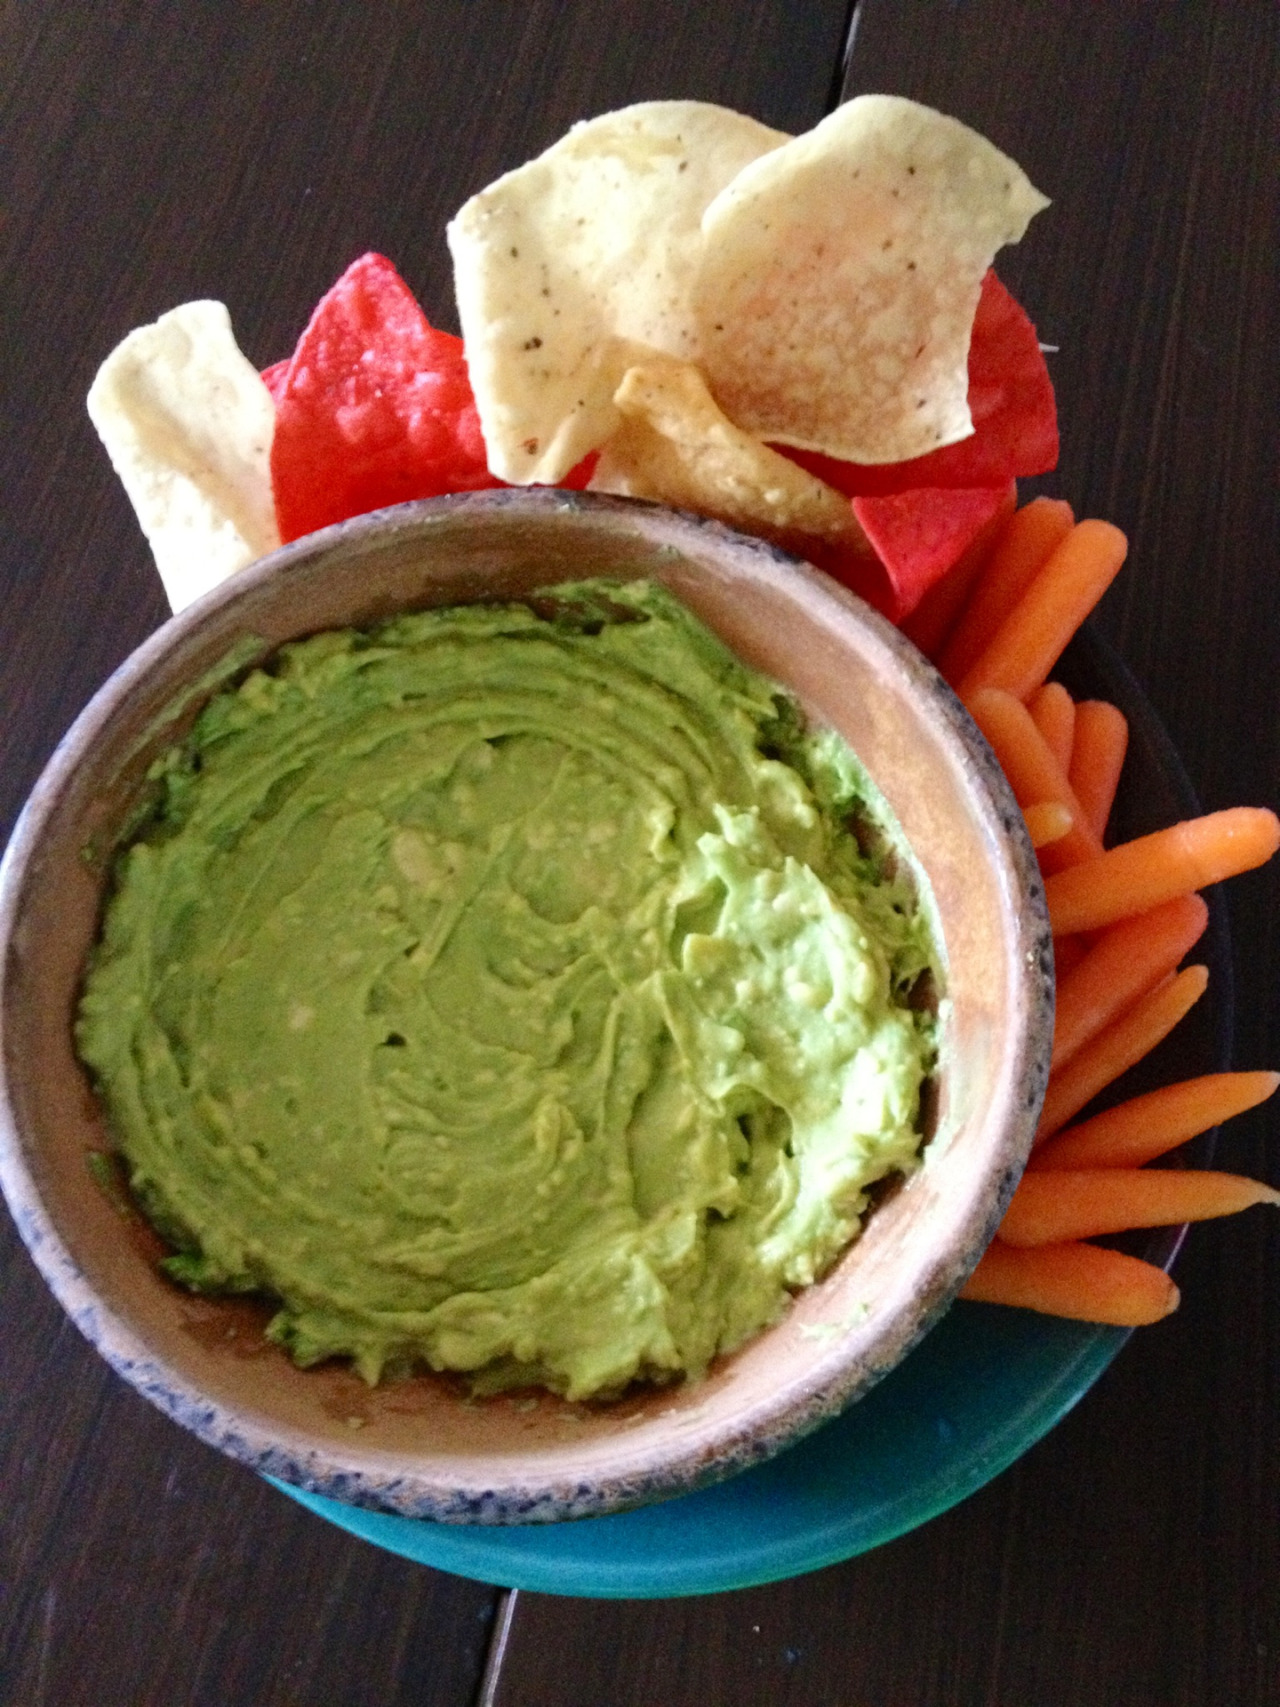 thecluelessvegan:   I made some homemade guacamole for Alli and I as a snack! We will nom with baby carrots and corn chips. Ole!